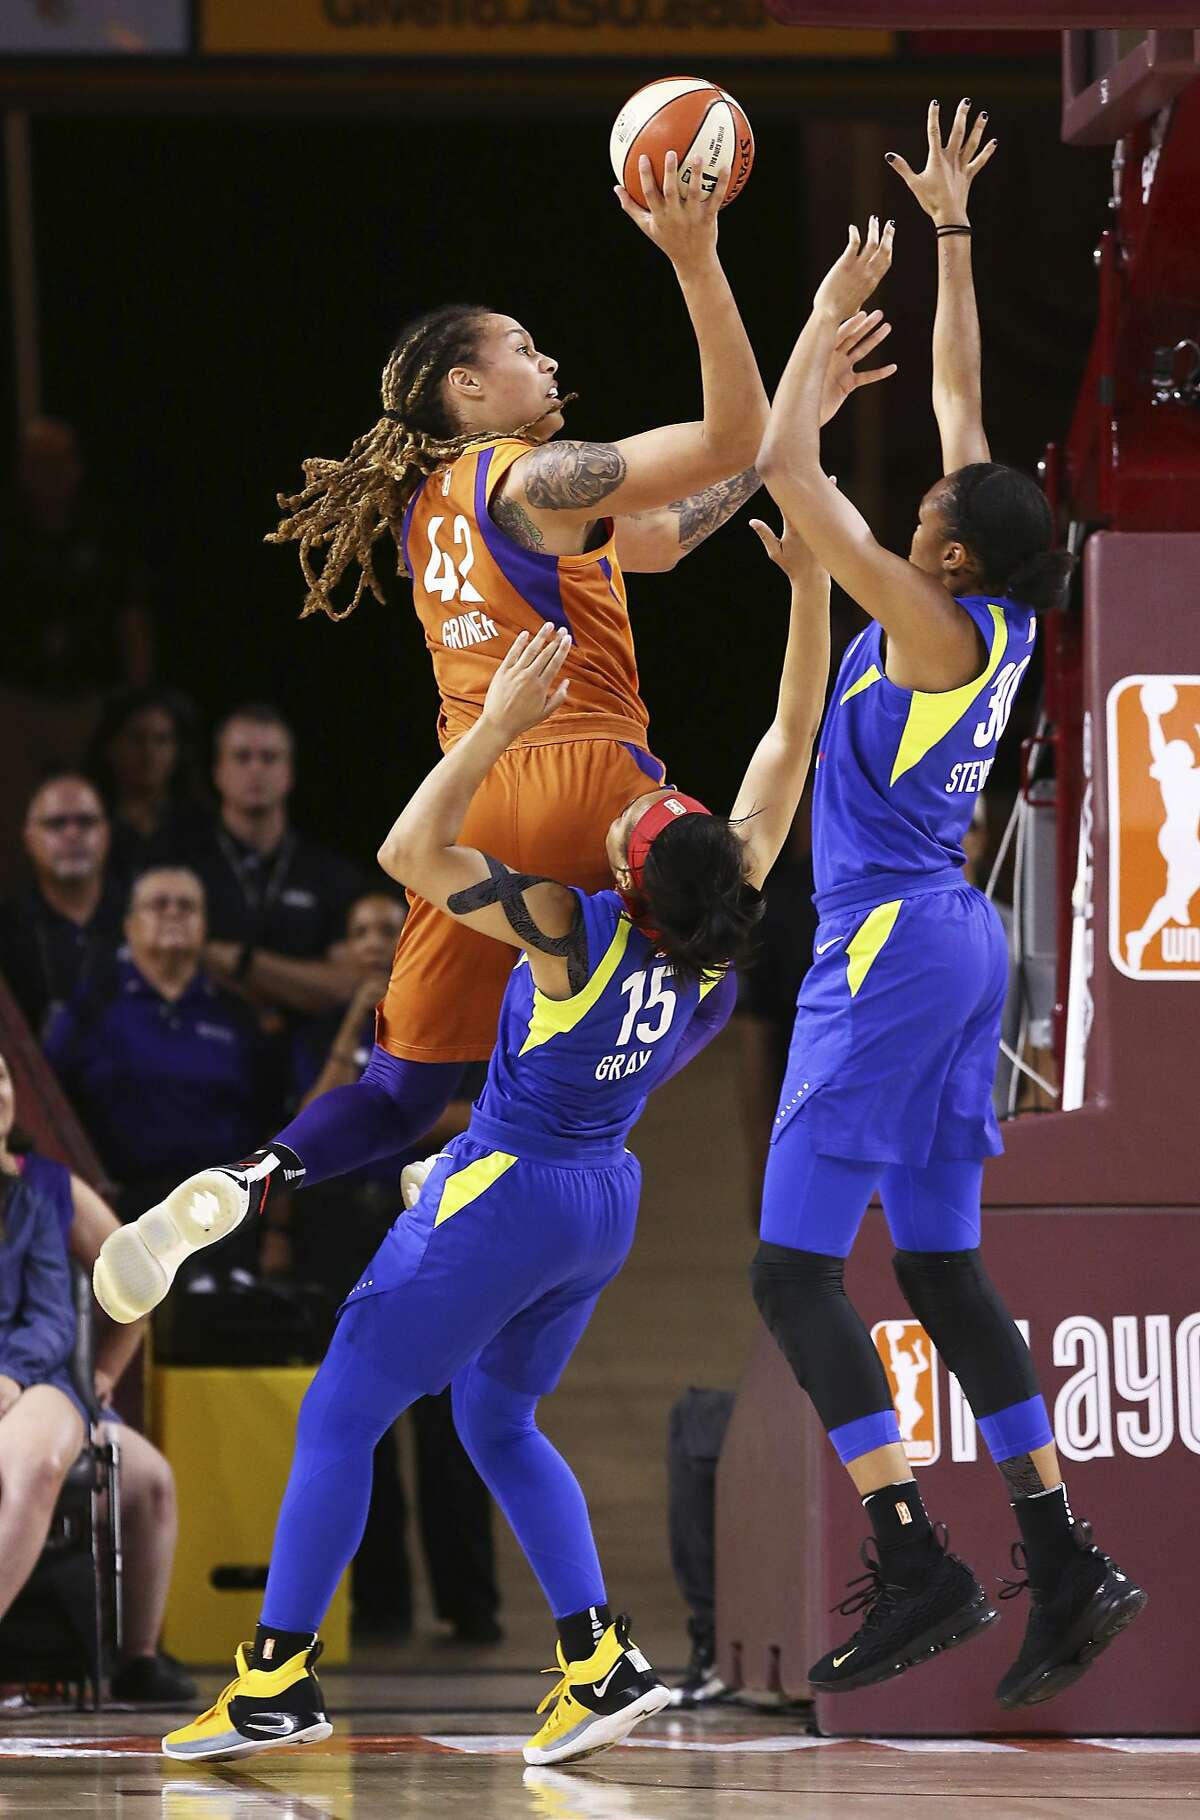 Phoenix Mercury's Brittney Griner (42) puts up a shot over Dallas Wings' Allisha Gray (15) and Azura Stevens (30) in the first half of a first round WNBA basketball playoff game, Tuesday, Aug. 21, 2018, at Wells Fargo Arena, in Tempe, Ariz. Phoenix beat Dallas 101-83. (Rob Schumacher/The Arizona Republic via AP)